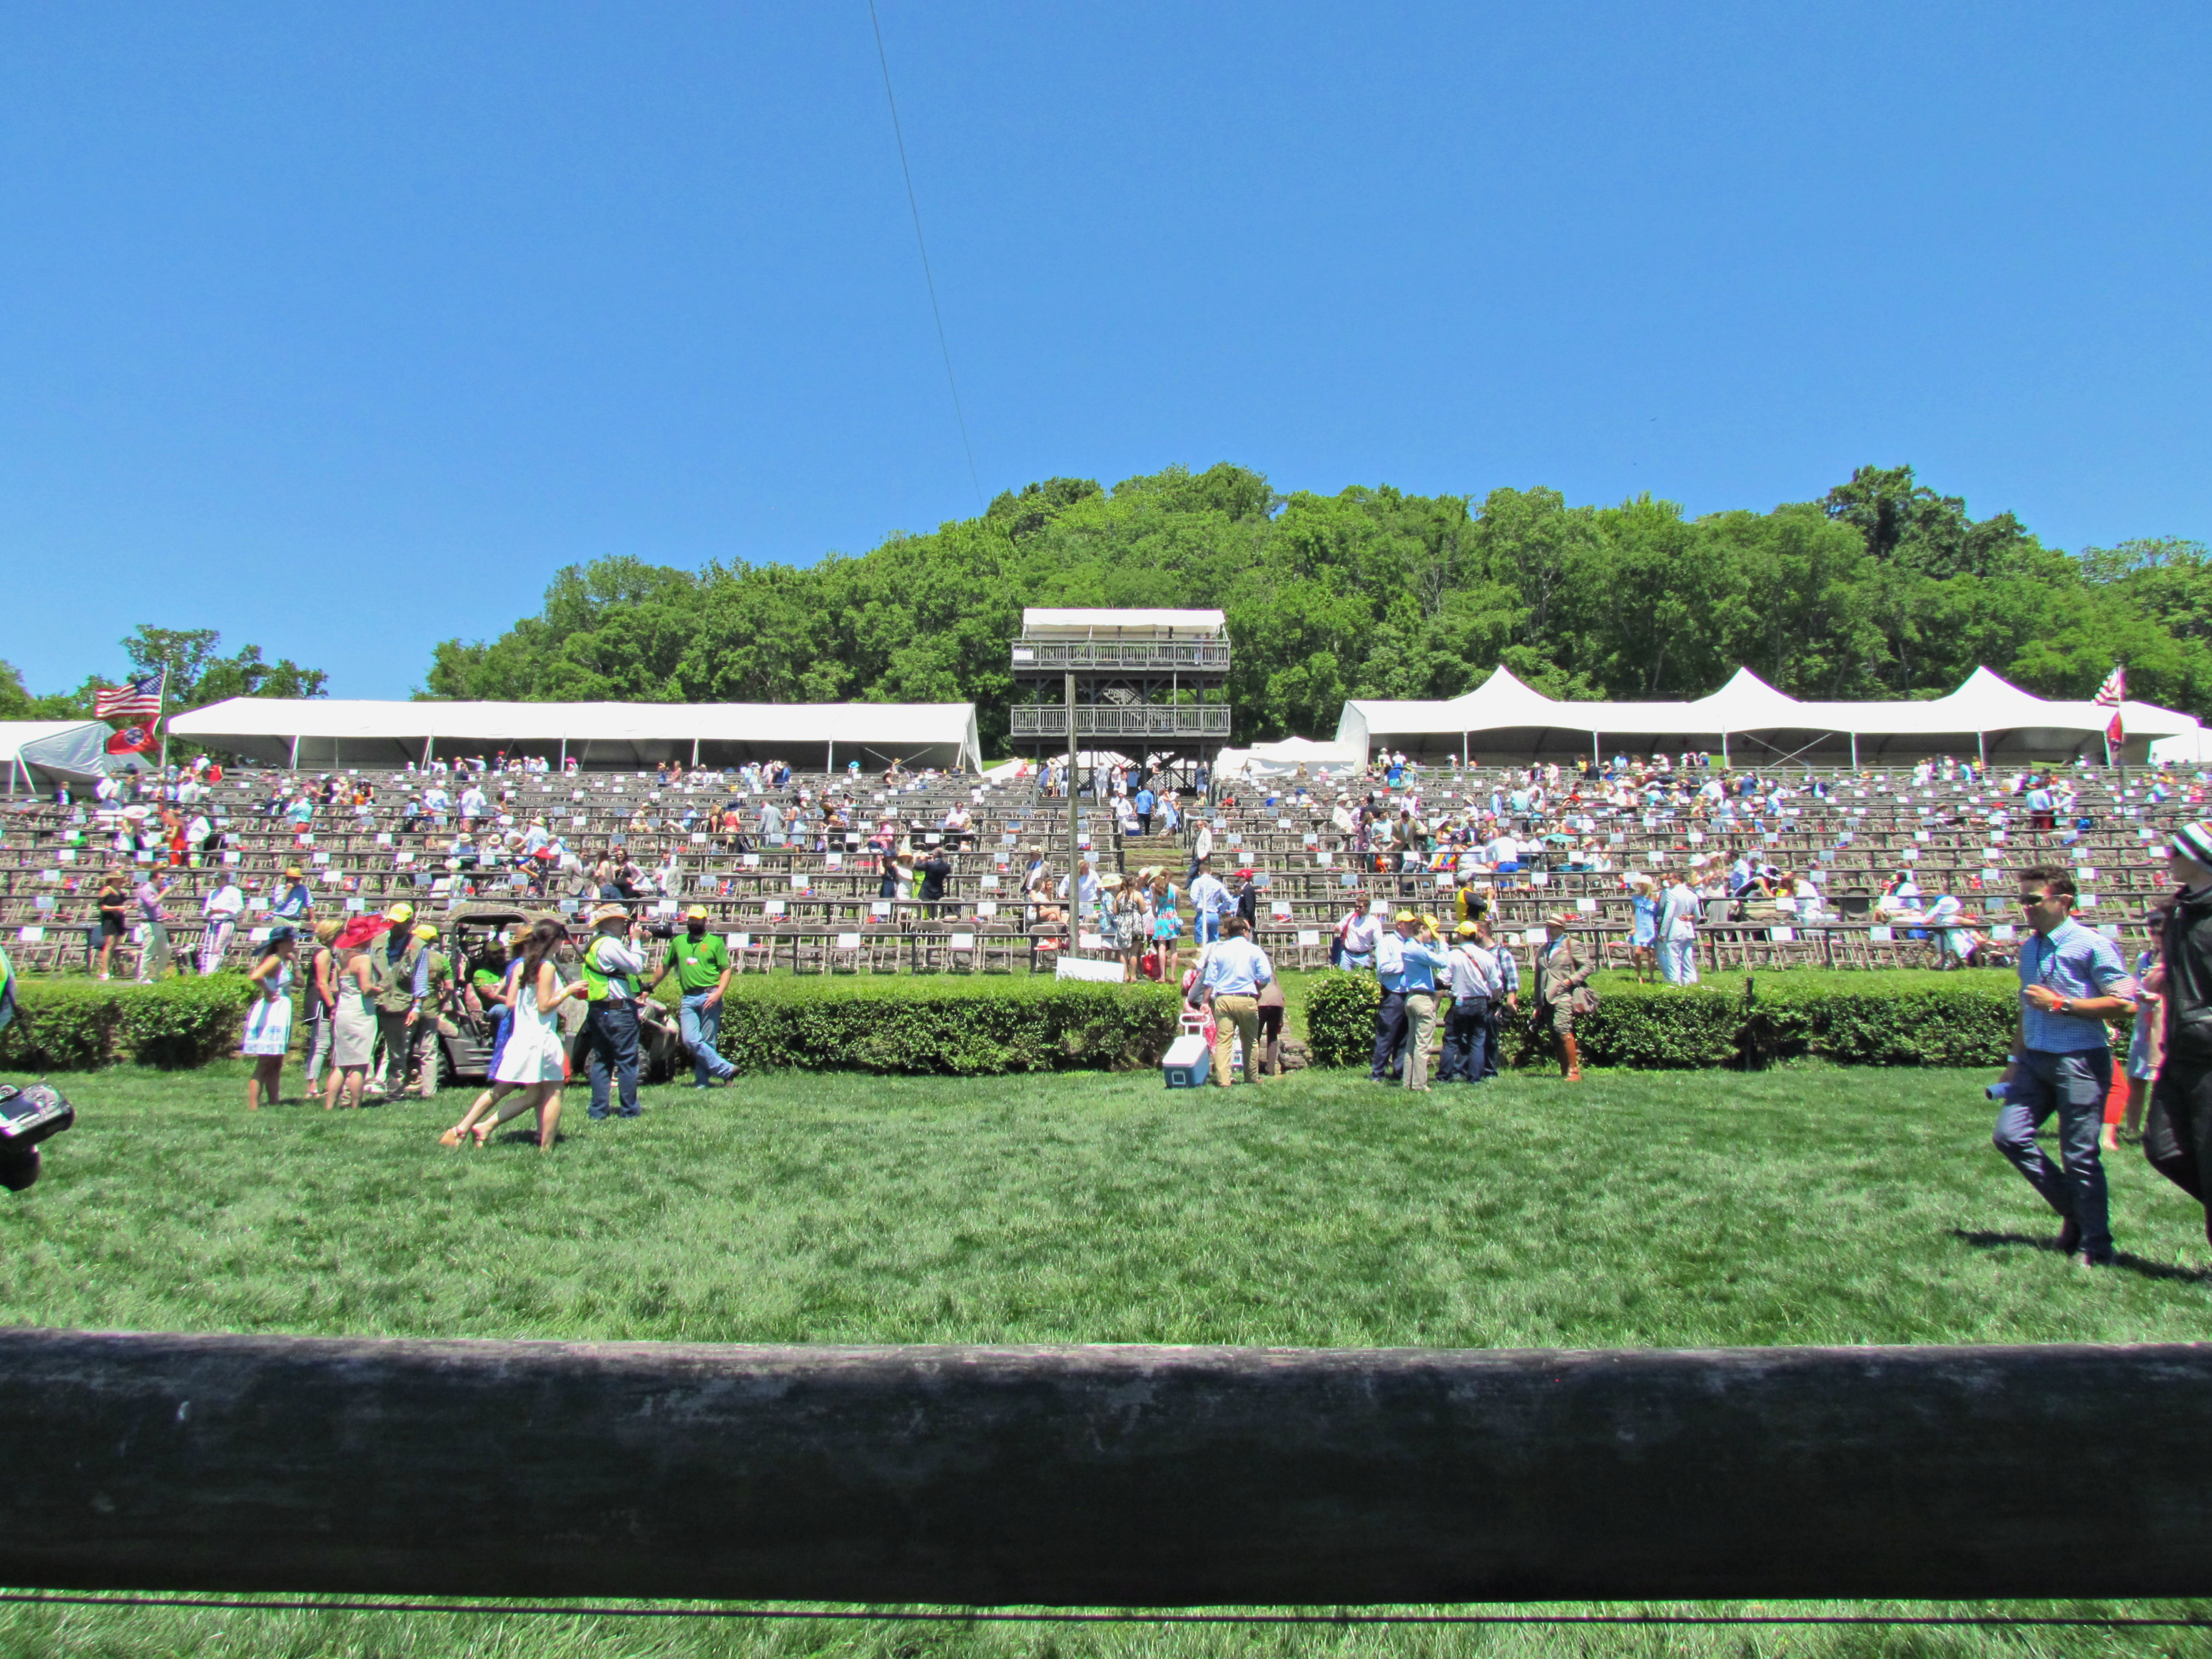 76th Steeplechase at Percy Warner Park in Nashville